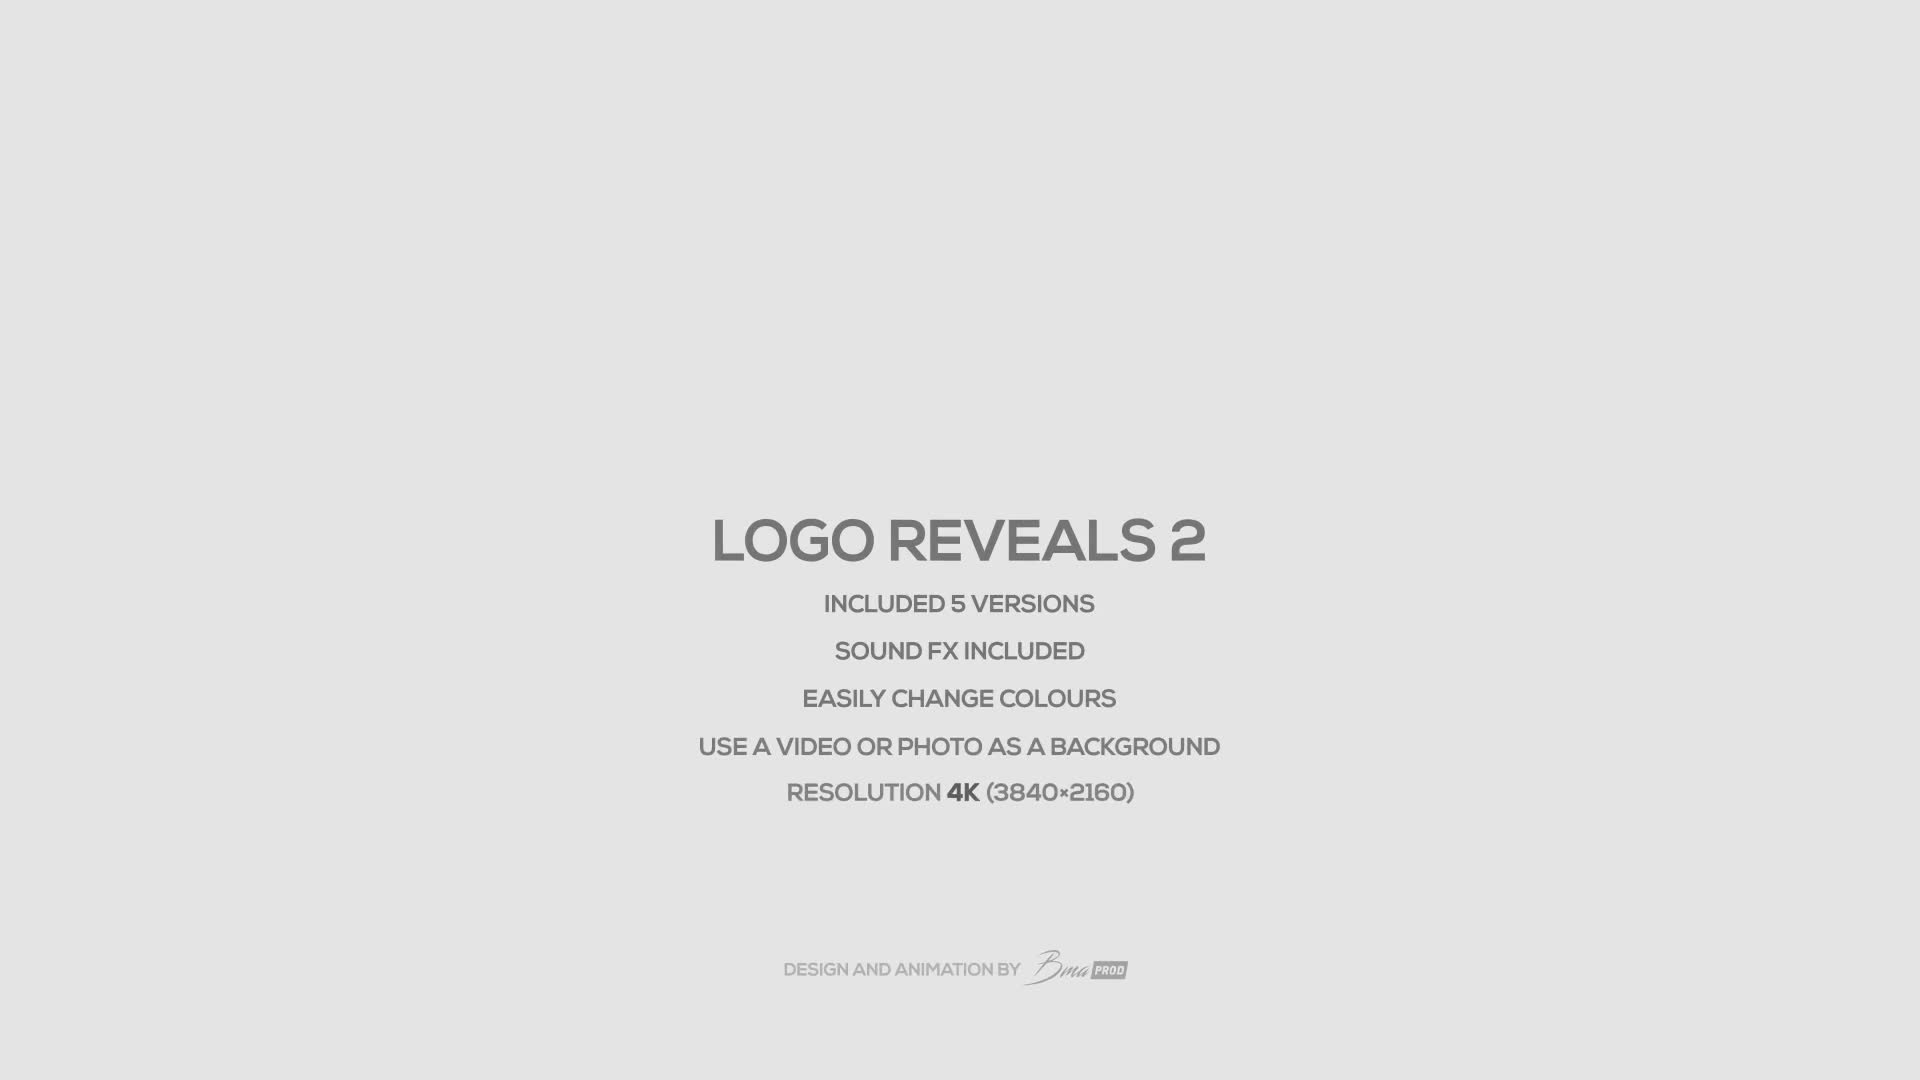 Logo Reveals 2 - Download Videohive 20645024